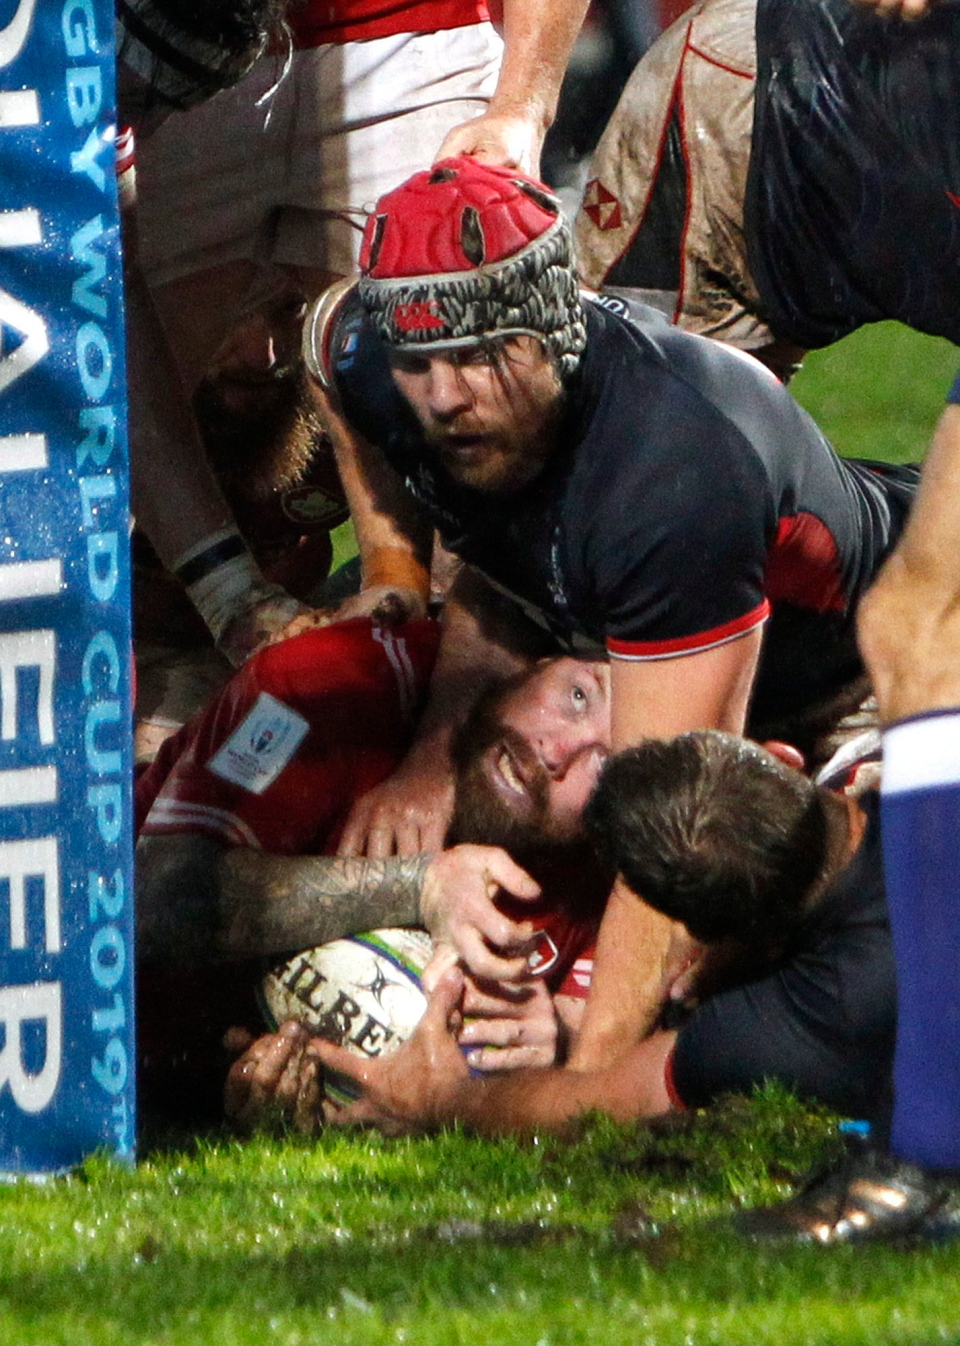 Canada's Ray Barkwill, bottom, scores a try despite Hong Kong's Fin Field during the 2019 Japan Rugby Union World Cup qualifying match between Canada and Hong Kong, in Marseille, southern France, Friday, Nov. 23, 2018. (AP Photo/Claude Paris)